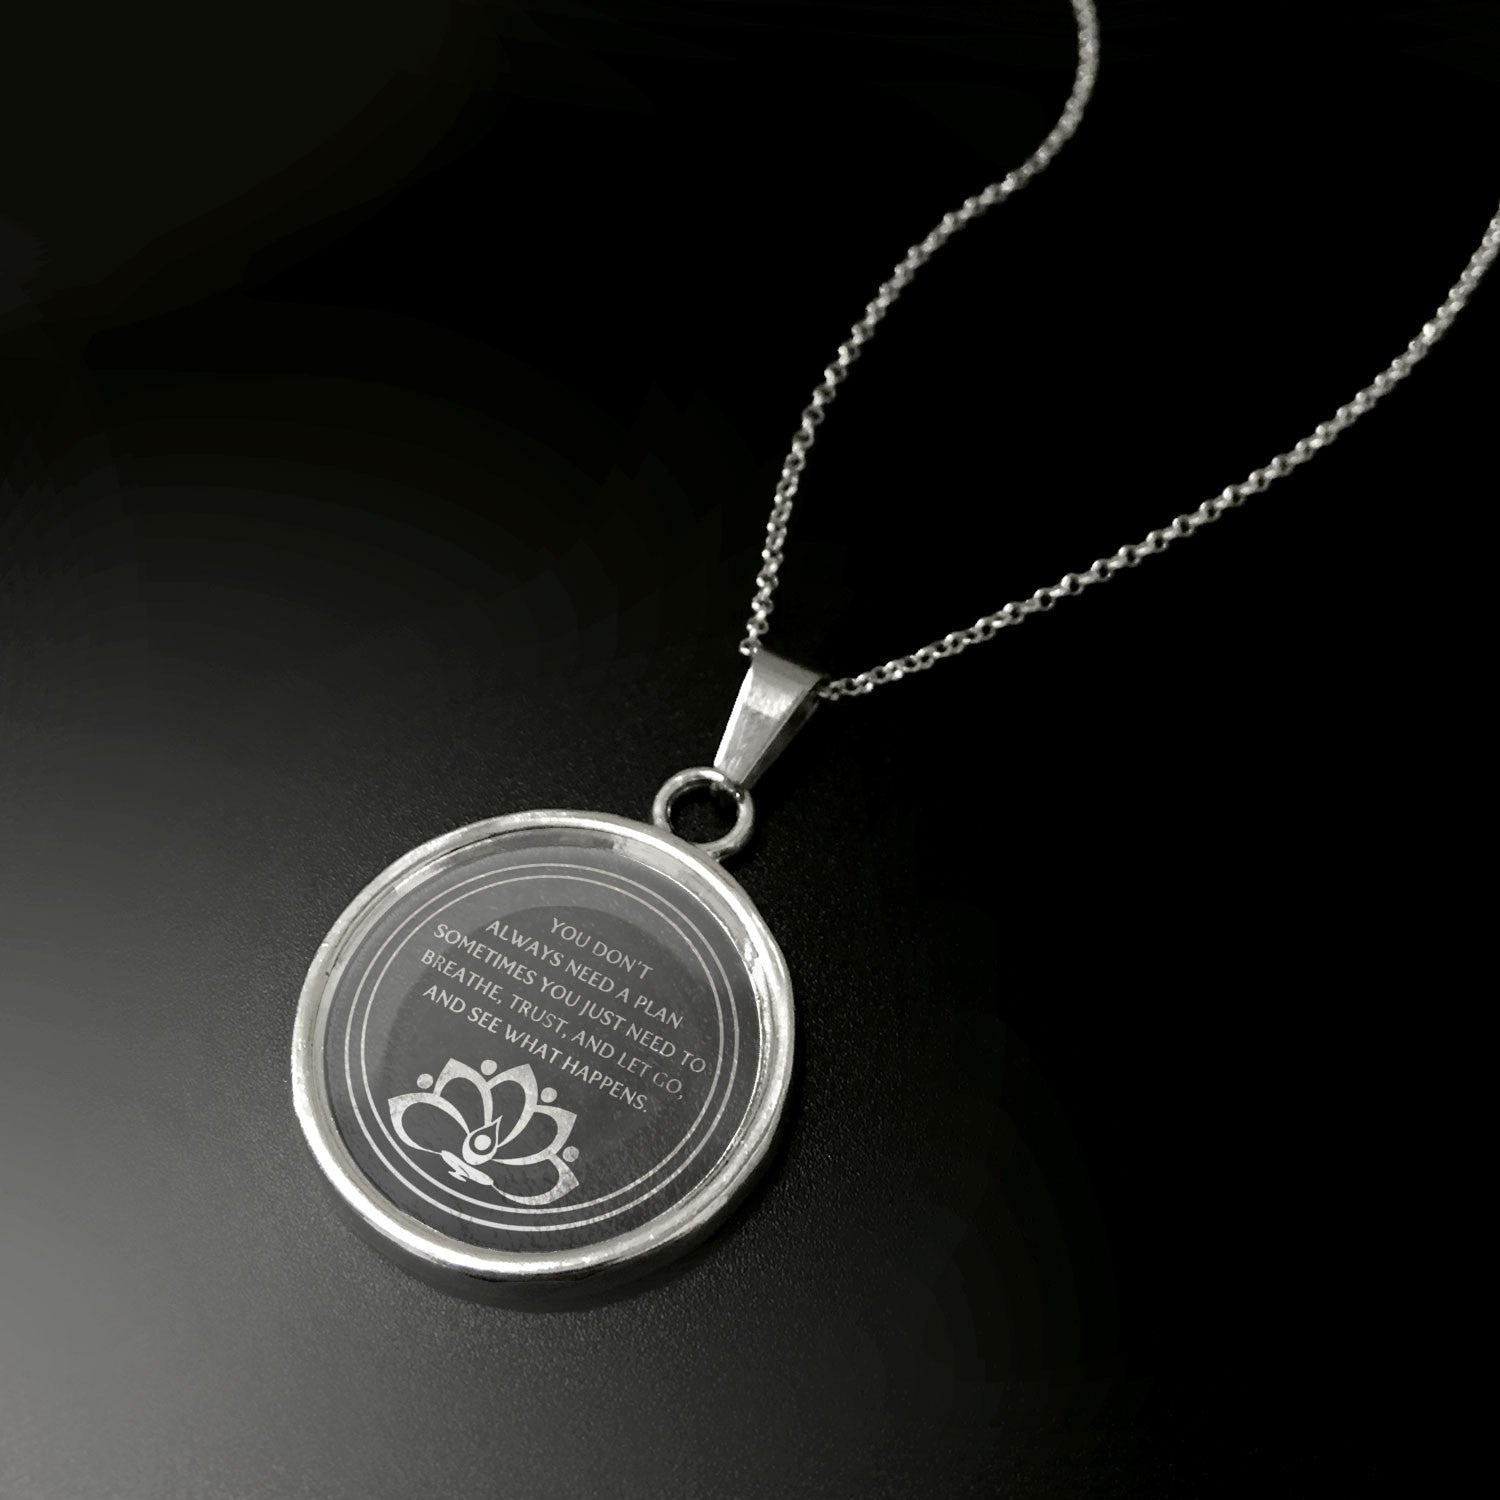 Breathe Trust & Let Go Pendant